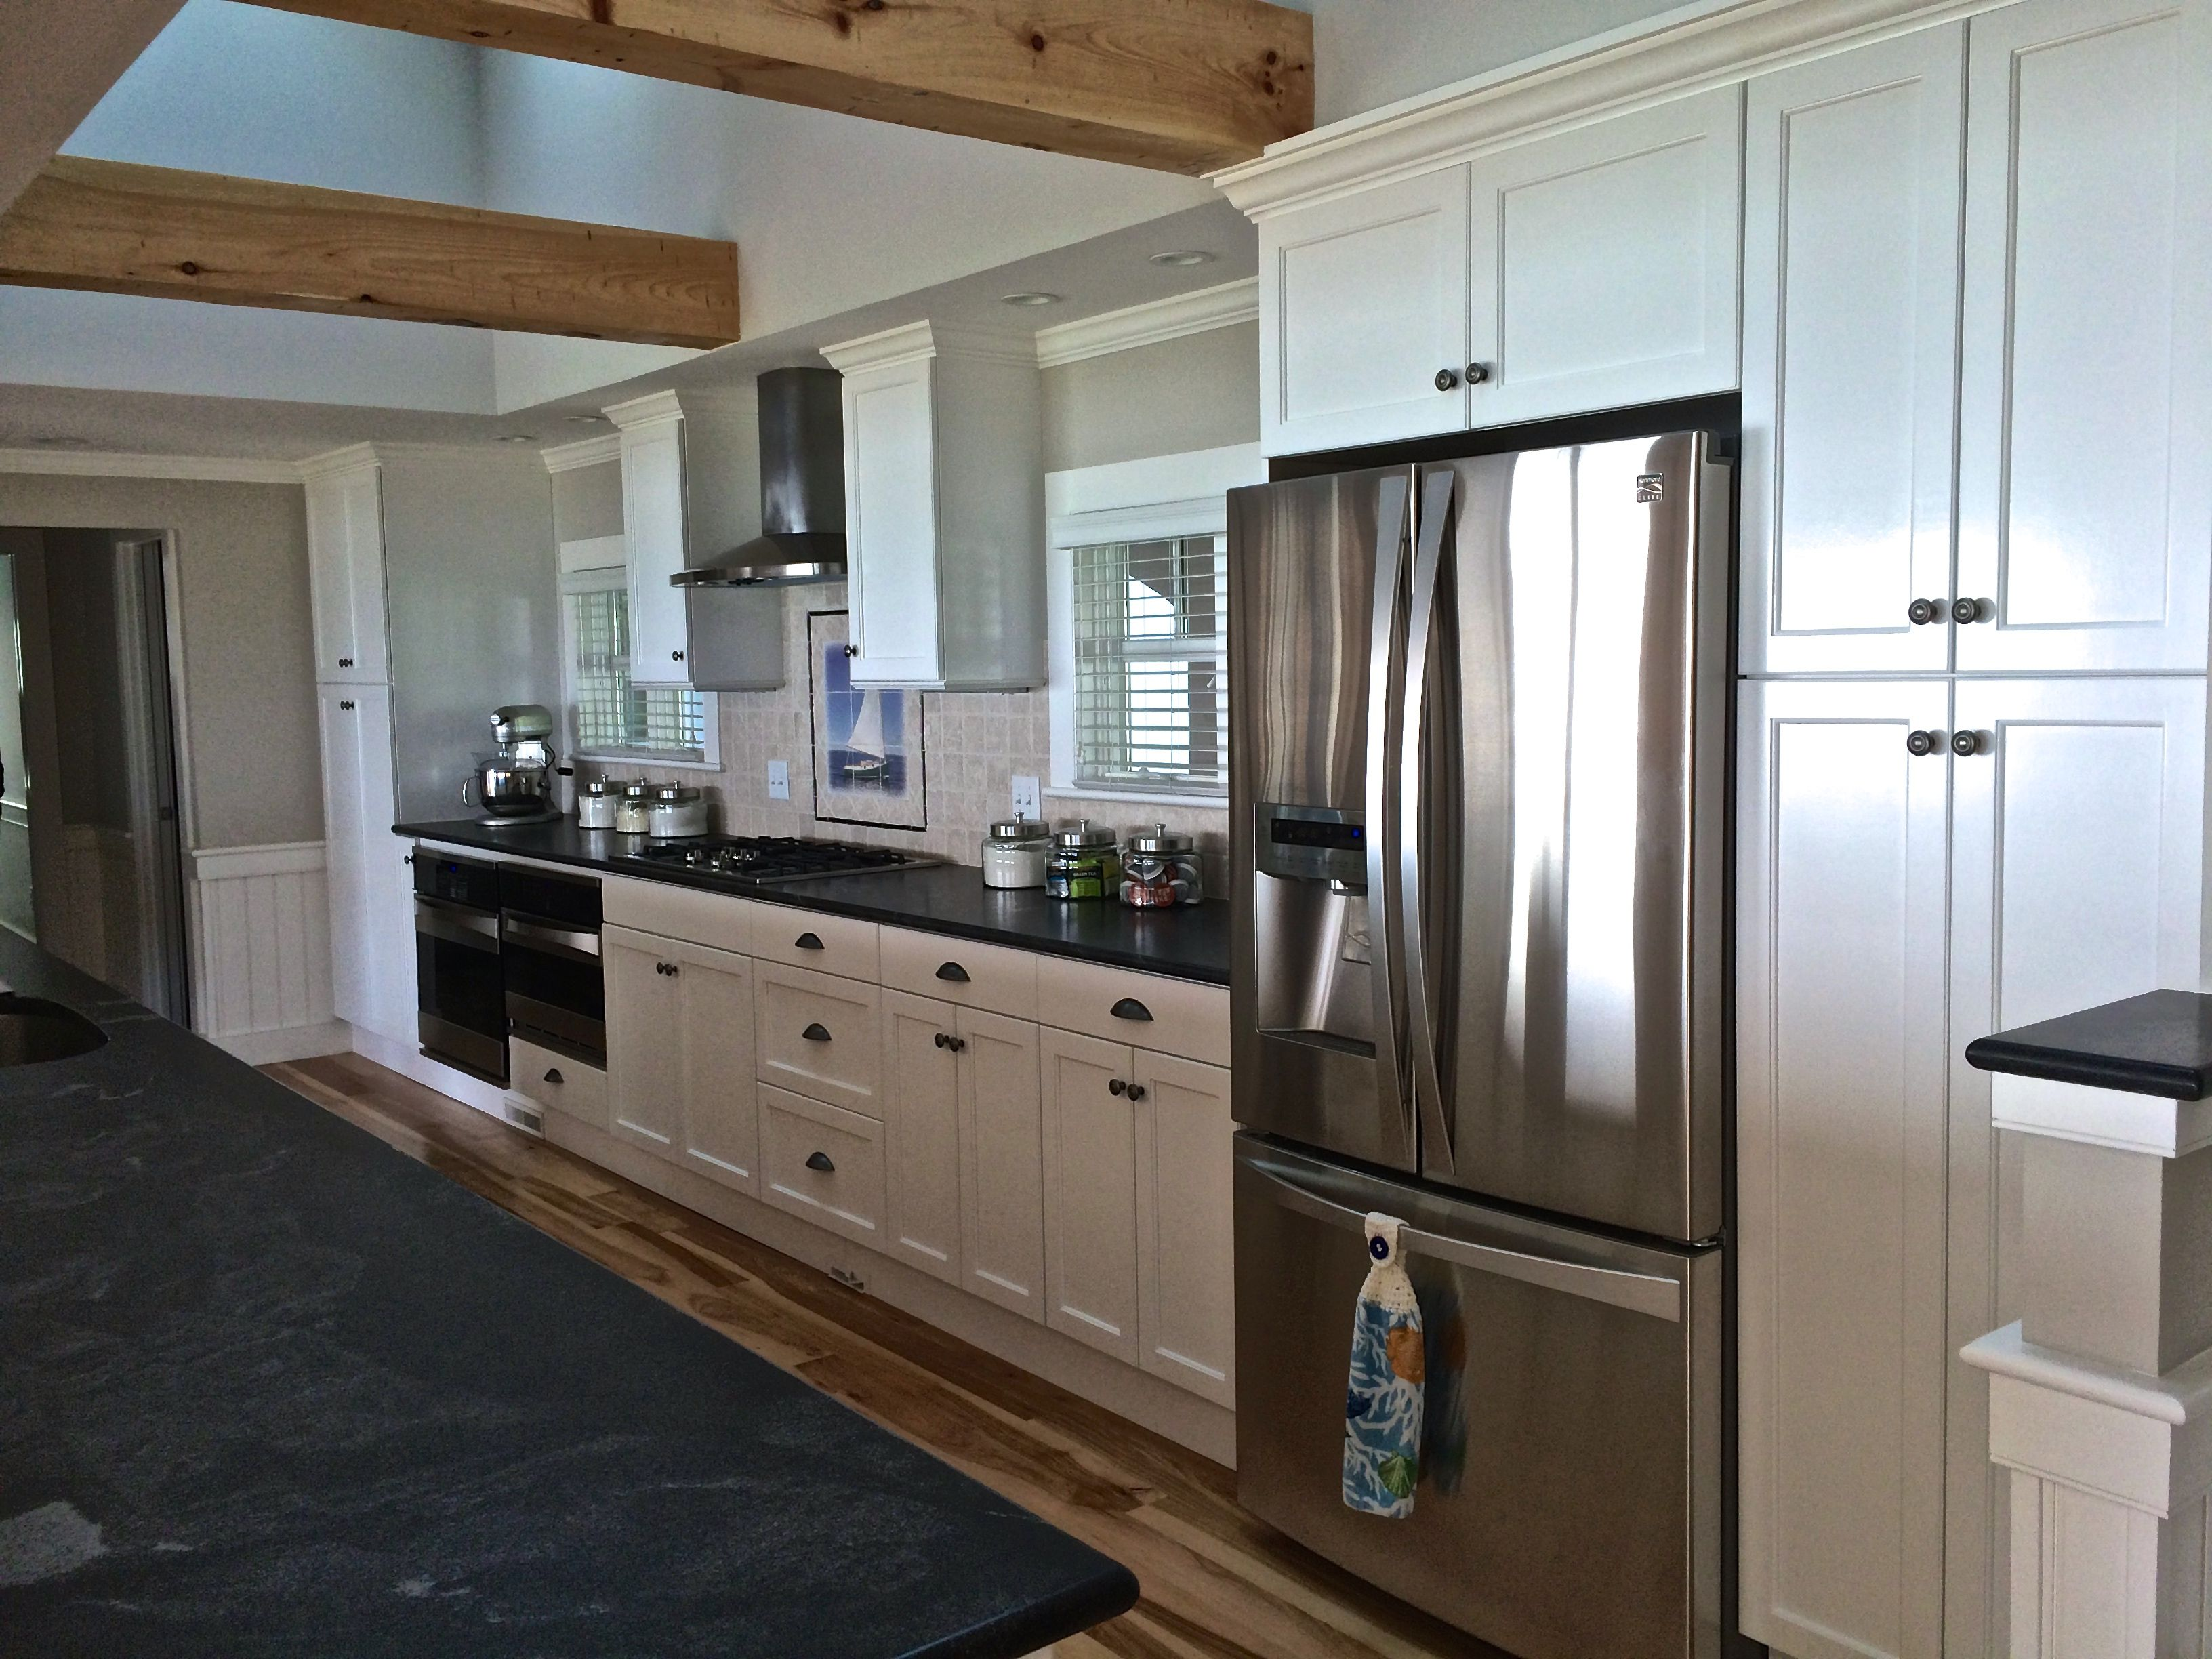 frameless construction with full overlay cabinet doors painted super rh pinterest com Cape Cod Kitchen Hardwood Floors Cape Cod Kitchen Countertops